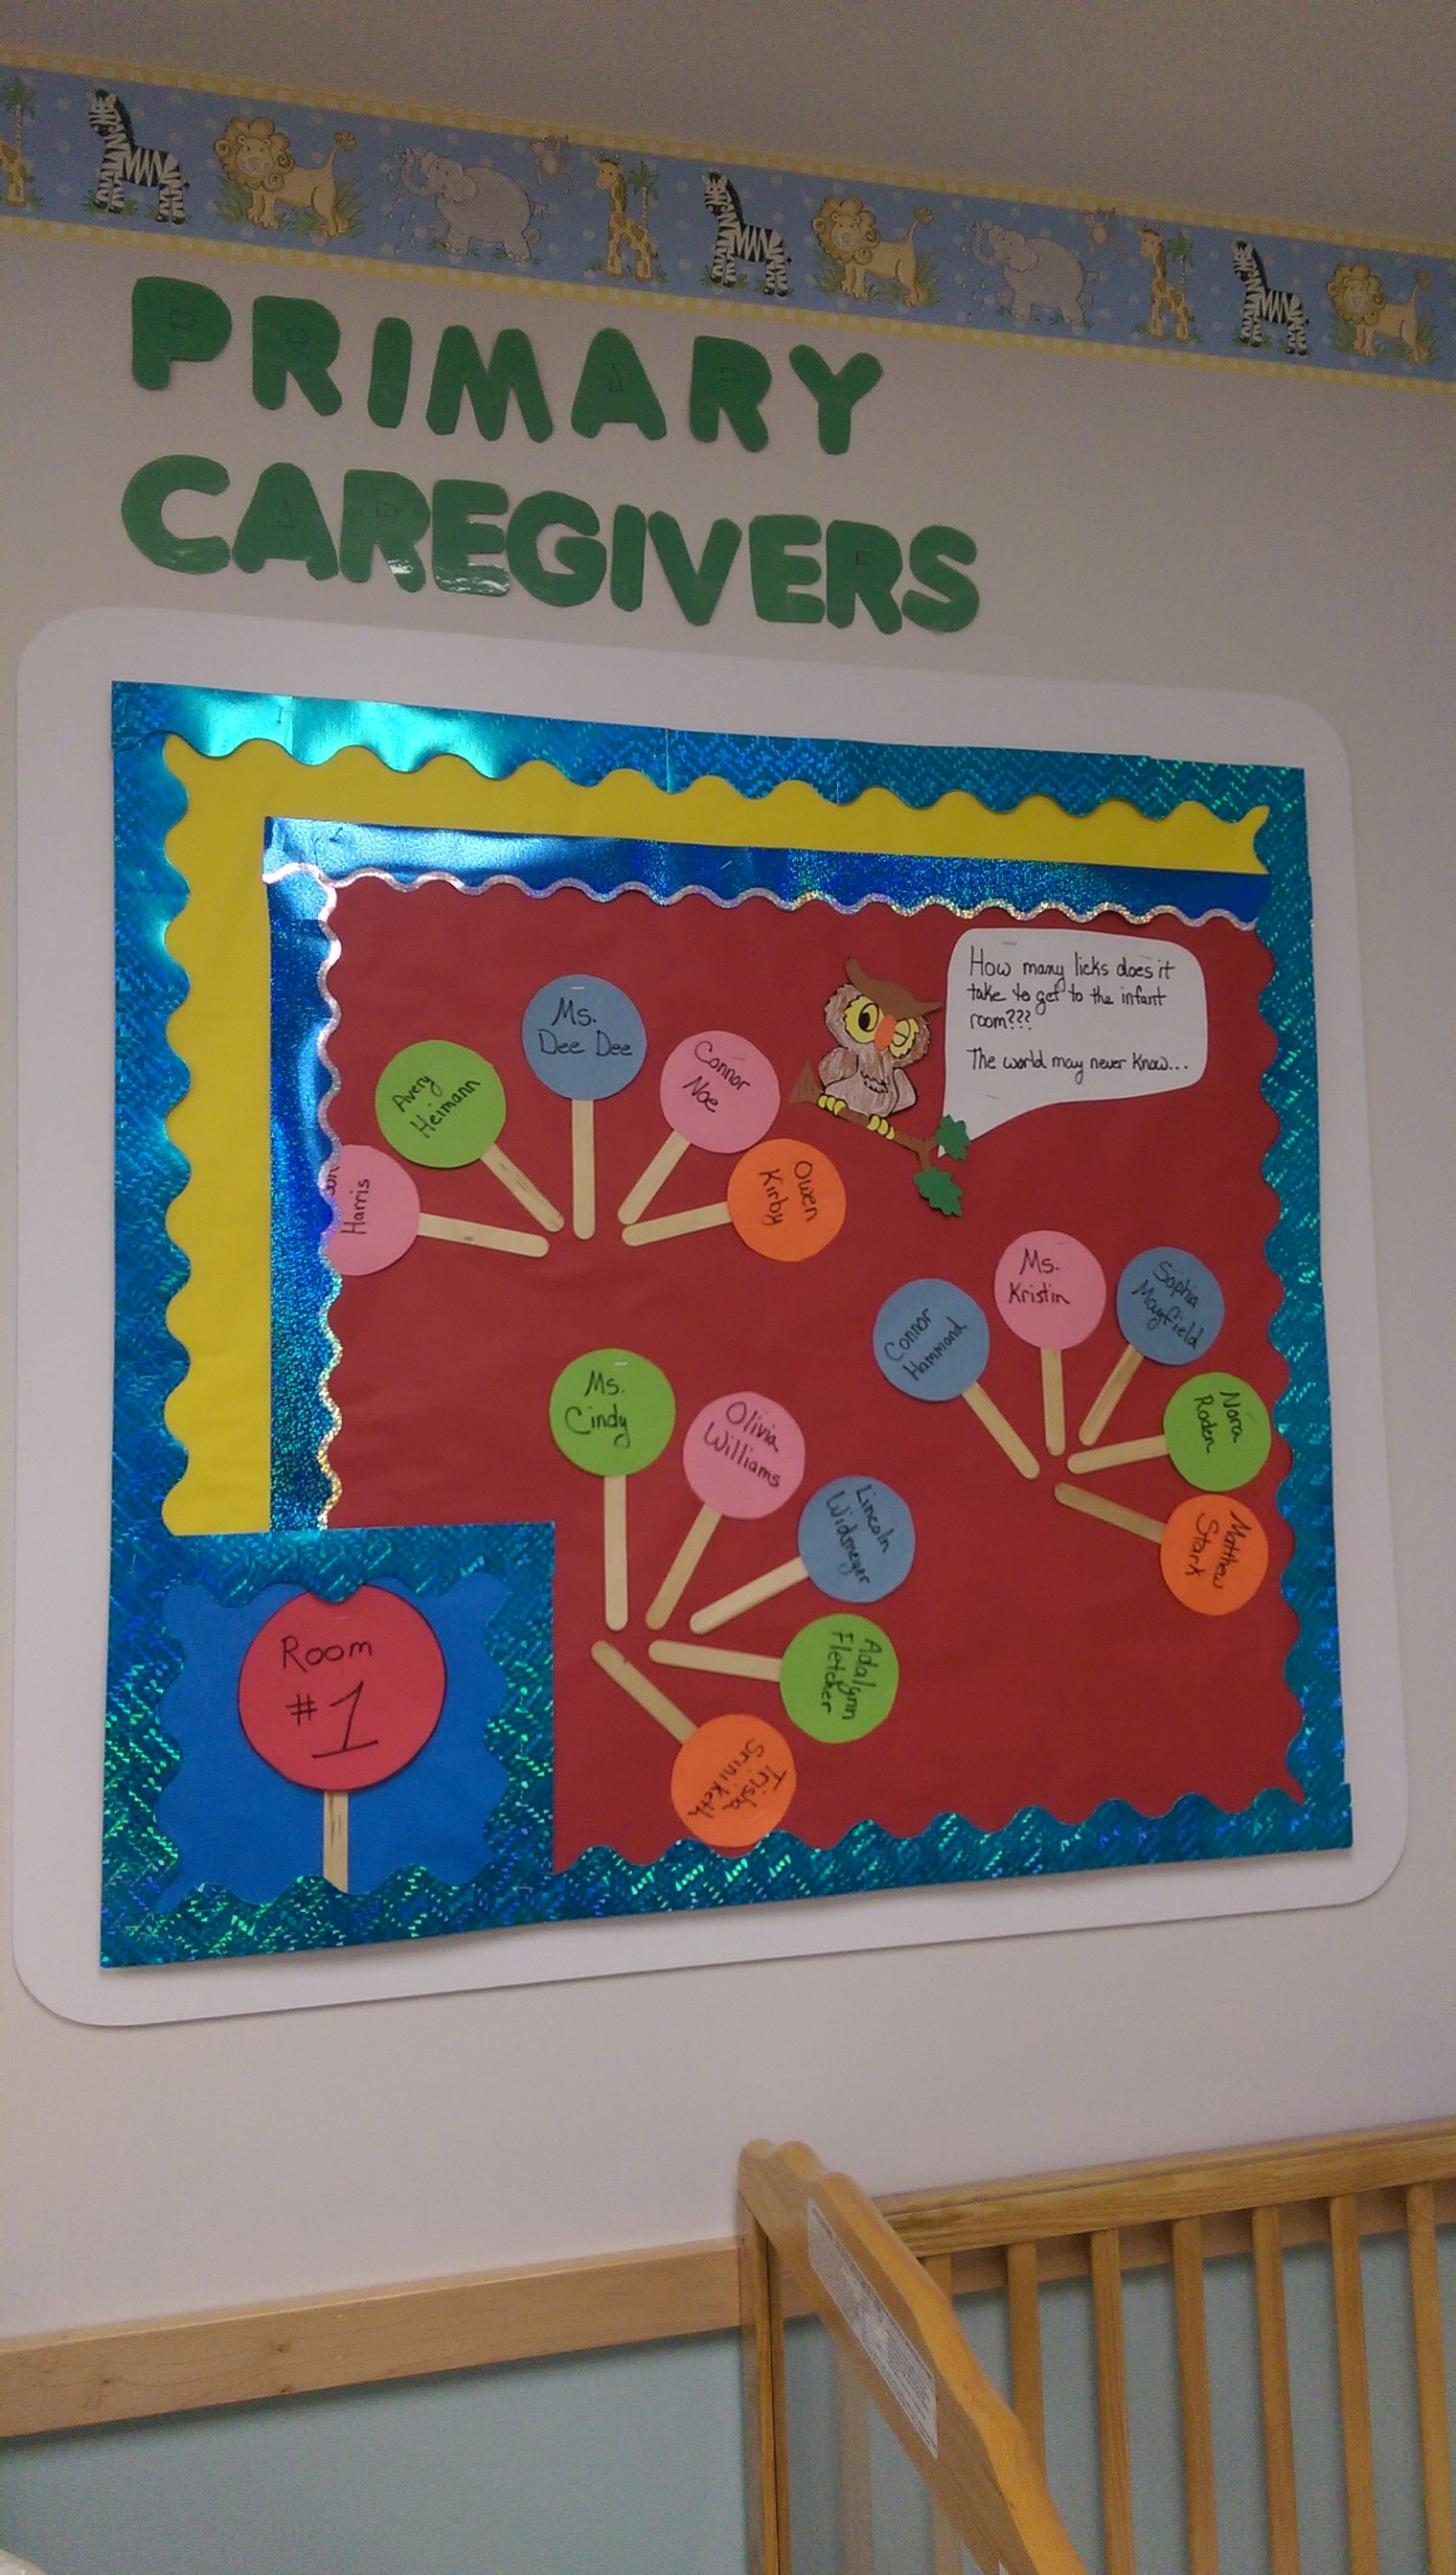 Primary Caregivers Board Quot How Many Licks Does It Take To